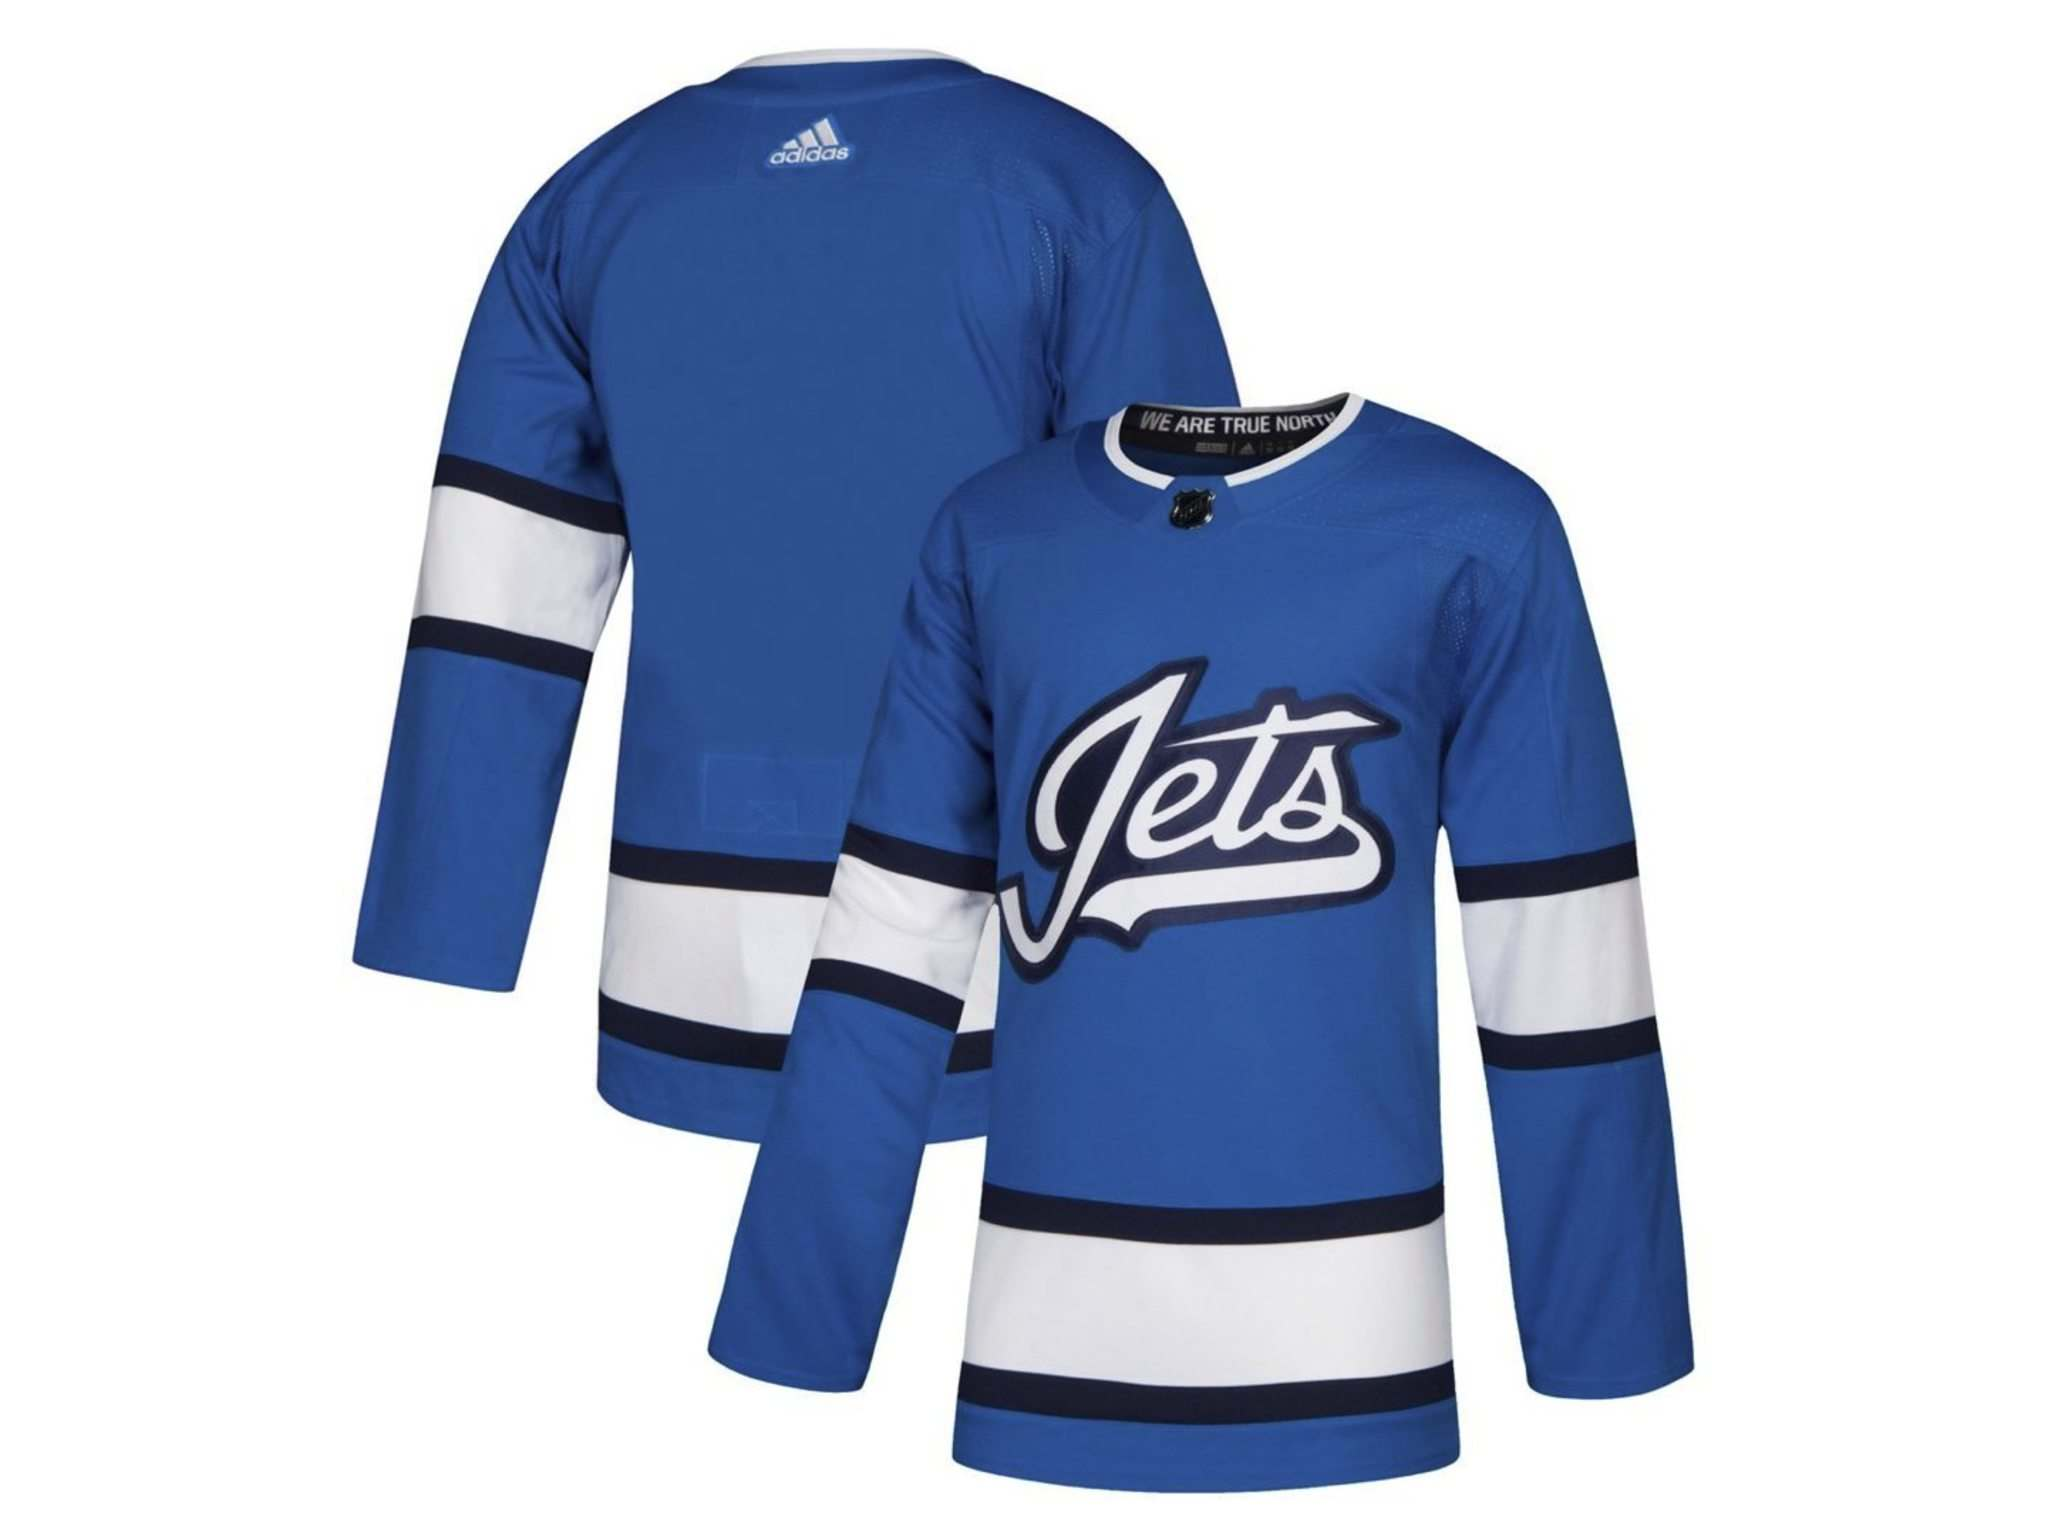 jets thursday jerseys